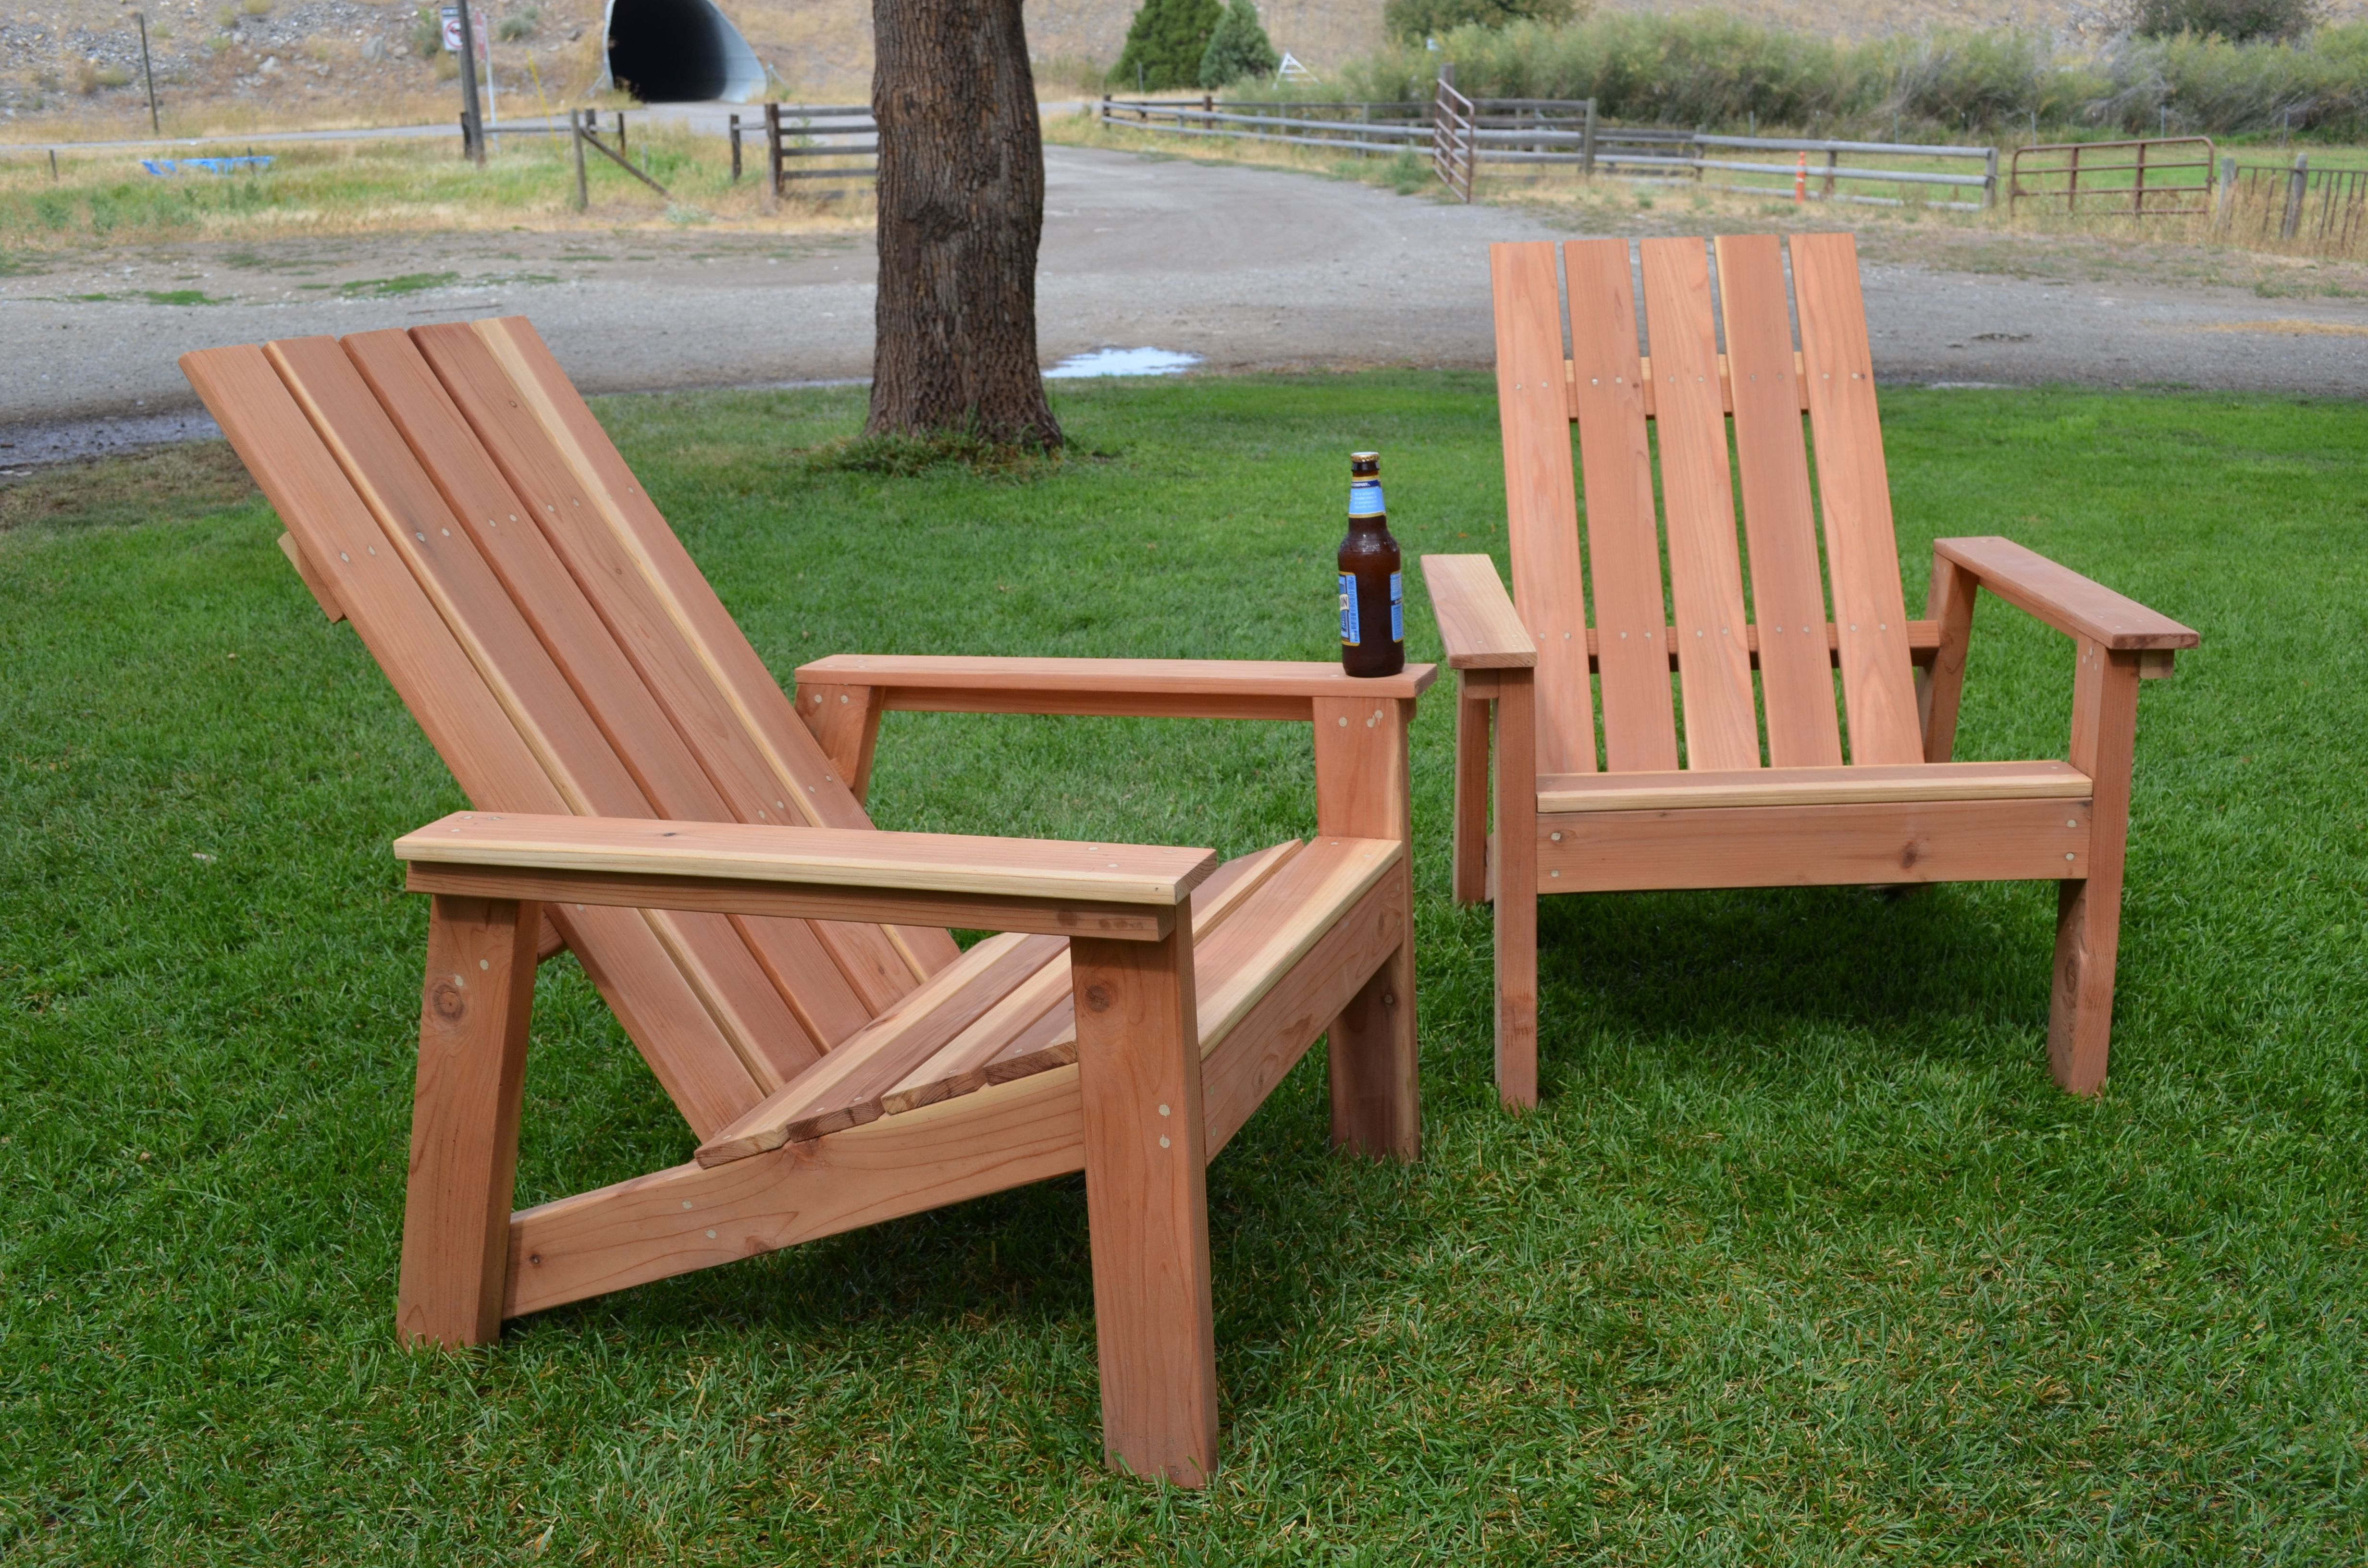 Best Of Double Adirondack Chair with Table Plans ...